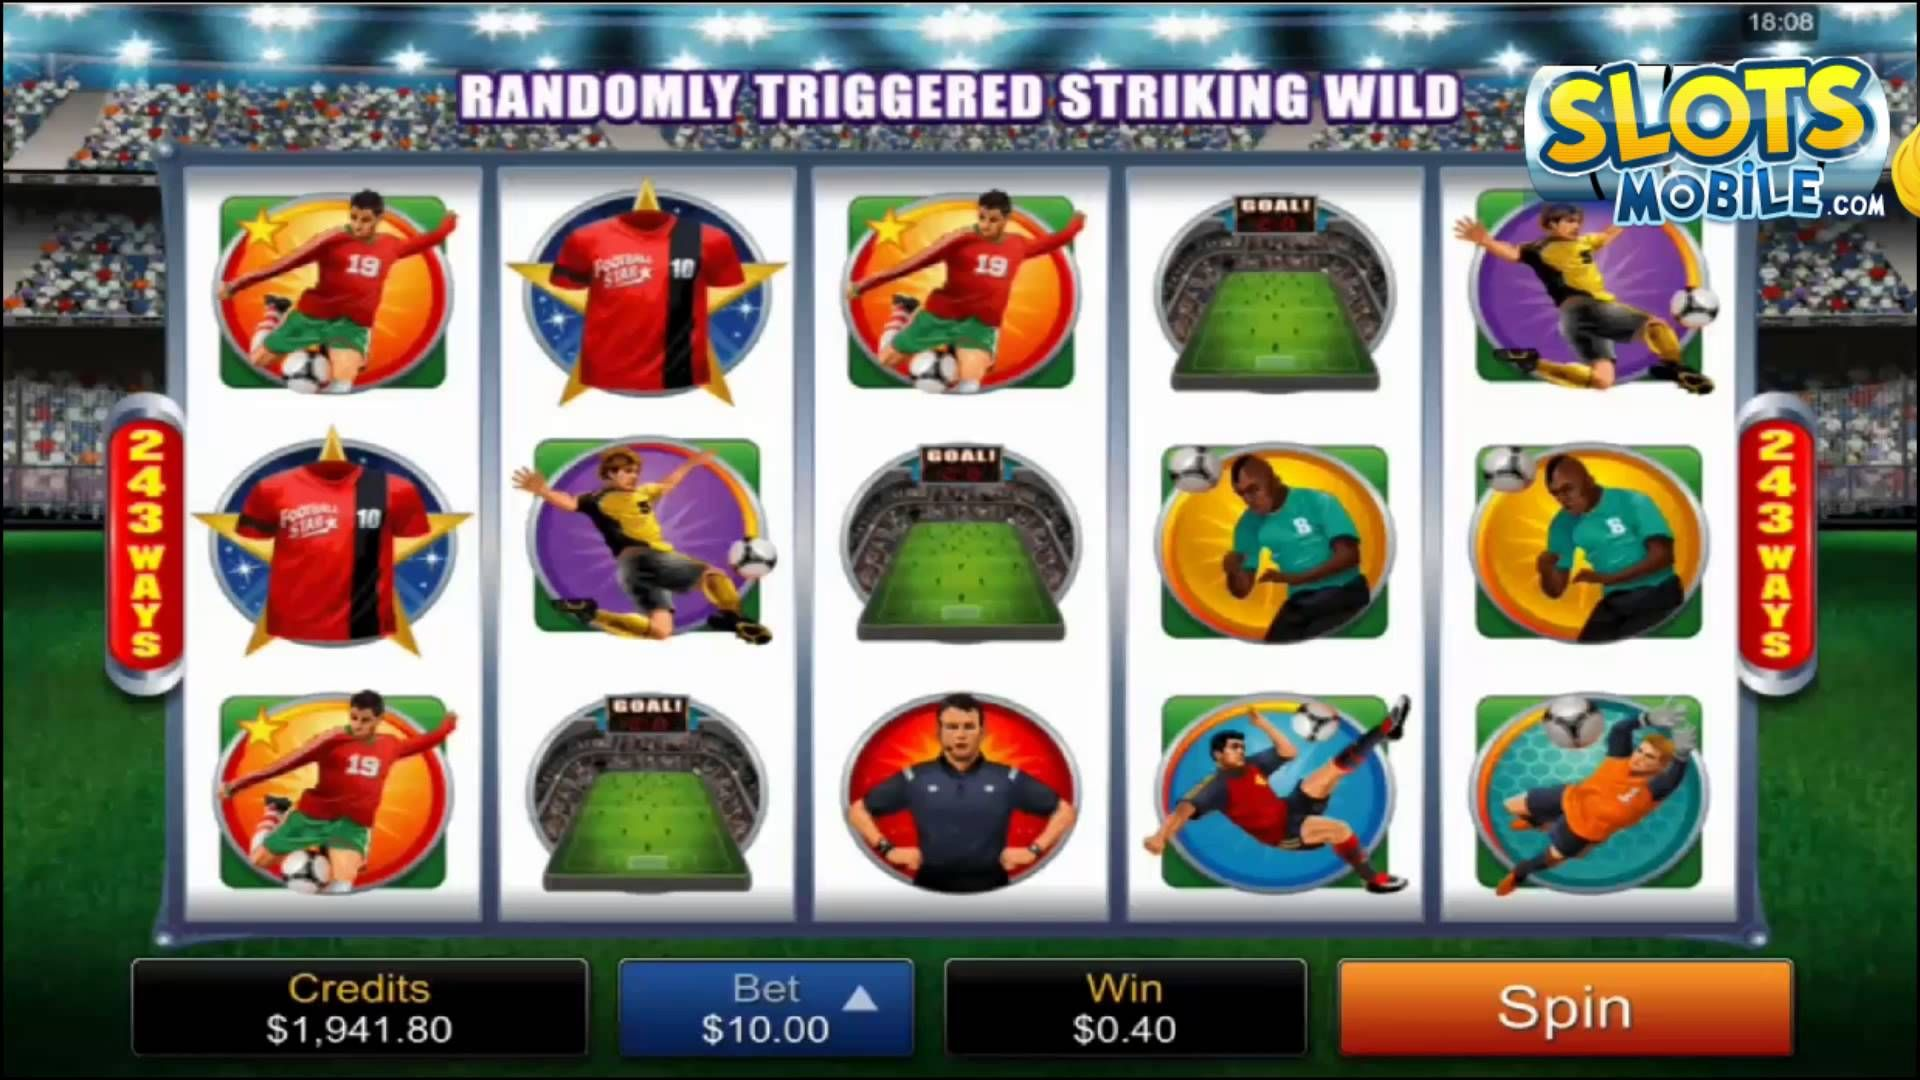 Here's a video review of Football Star mobile slots from Microgaming.  You can check out the full Football Star slot game review at http://www.slotsmobile.com/slots/football-star/  For more information on the best mobile slots casinos, mobile slots bonuses and mobile slot game reviews, please visit:  SlotsMobile.com http://www.slotsmobile.com/ #1 Mobile Slots Guide